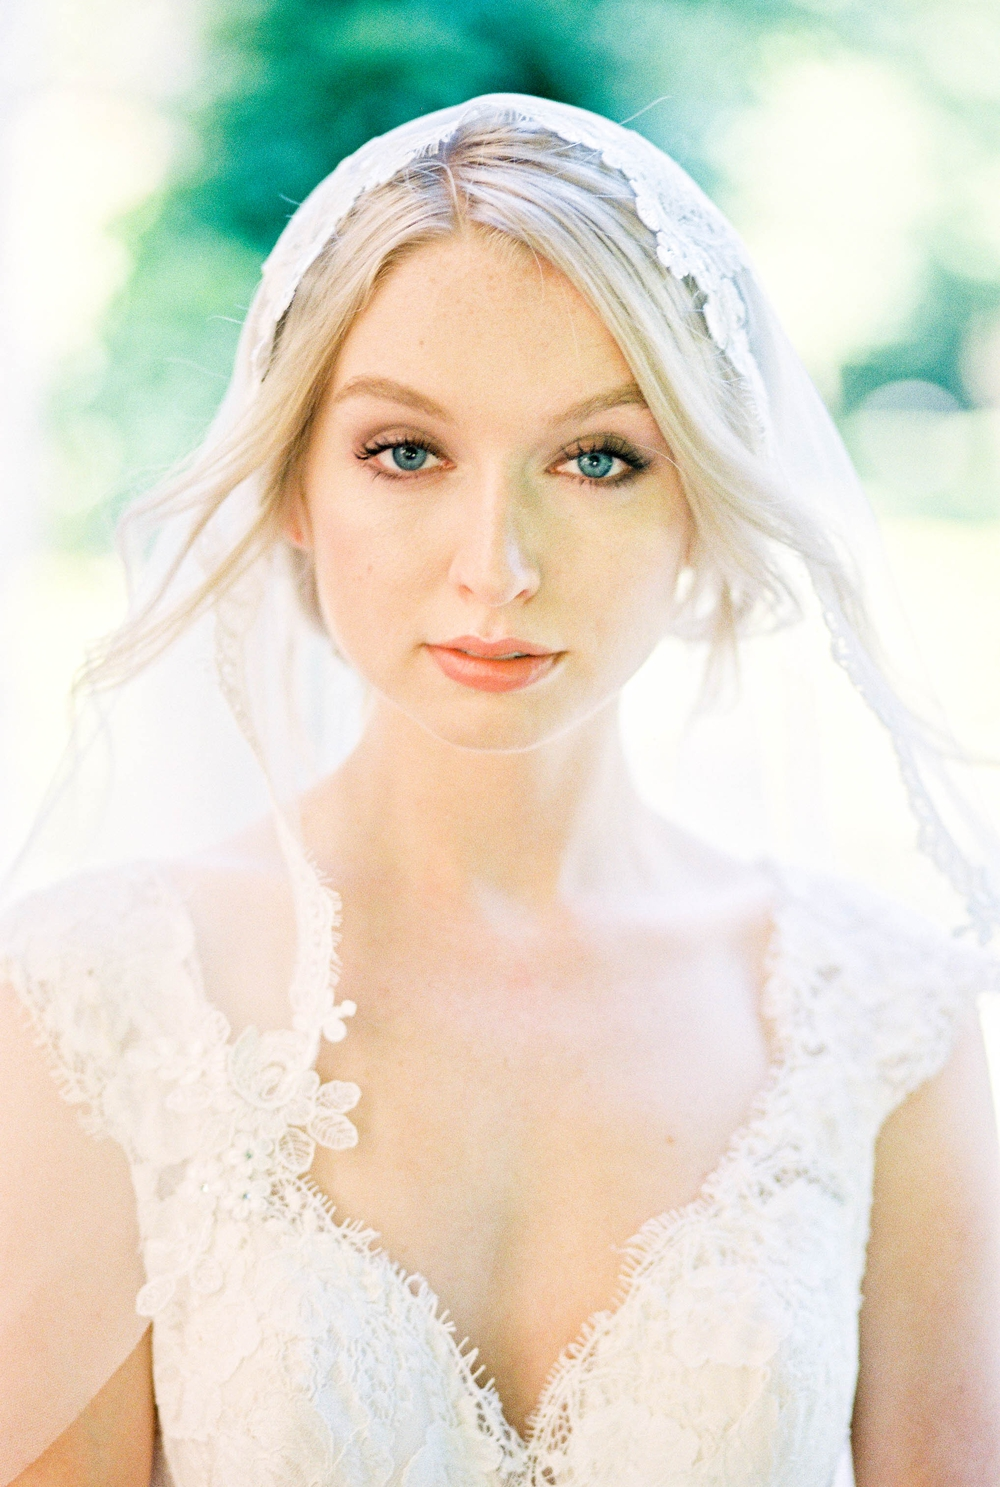 blonde bride with lace veil and dress gazing directly at the camera